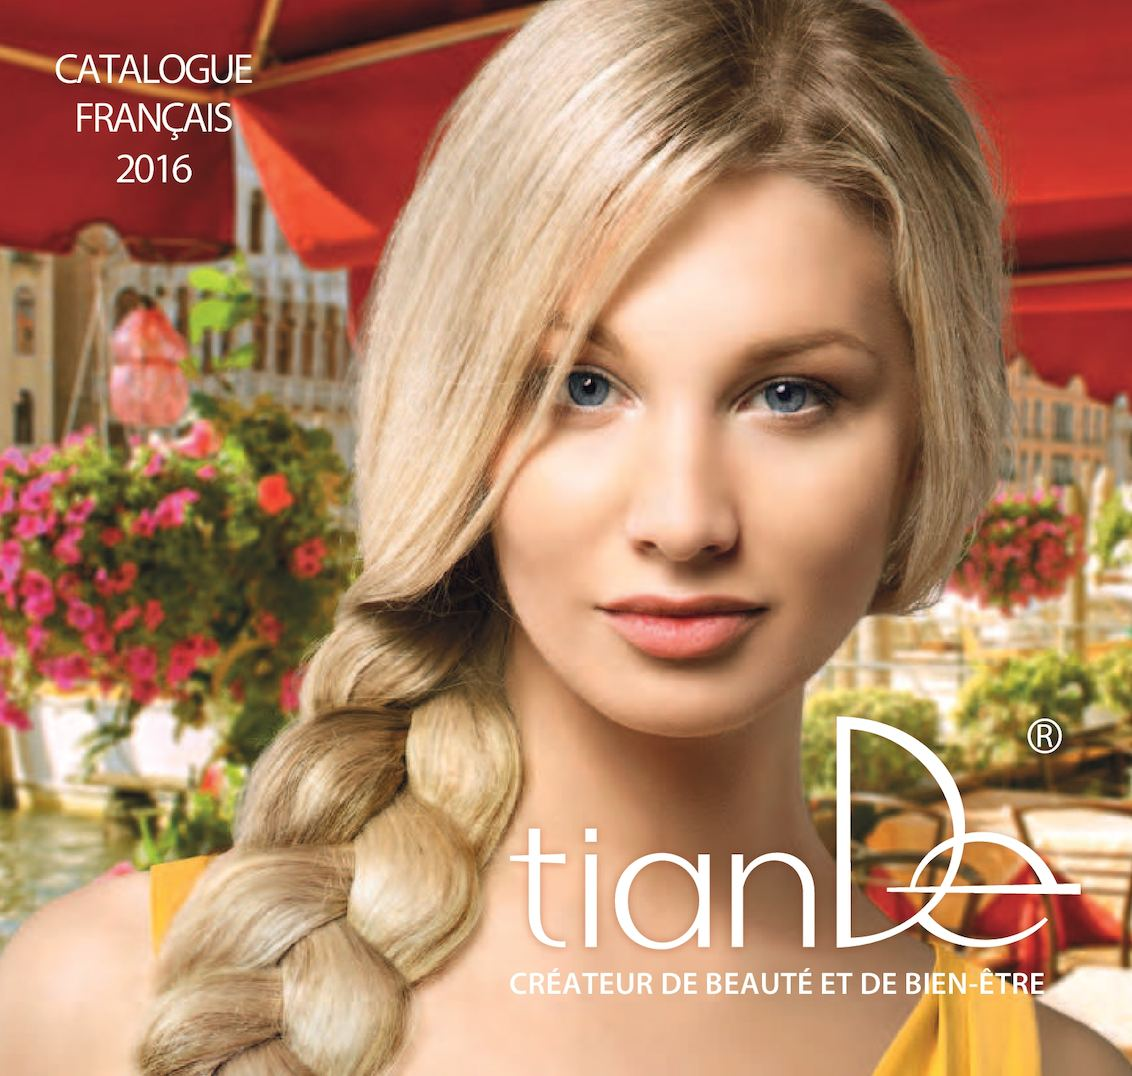 Catalogue Francais Tiande 2016